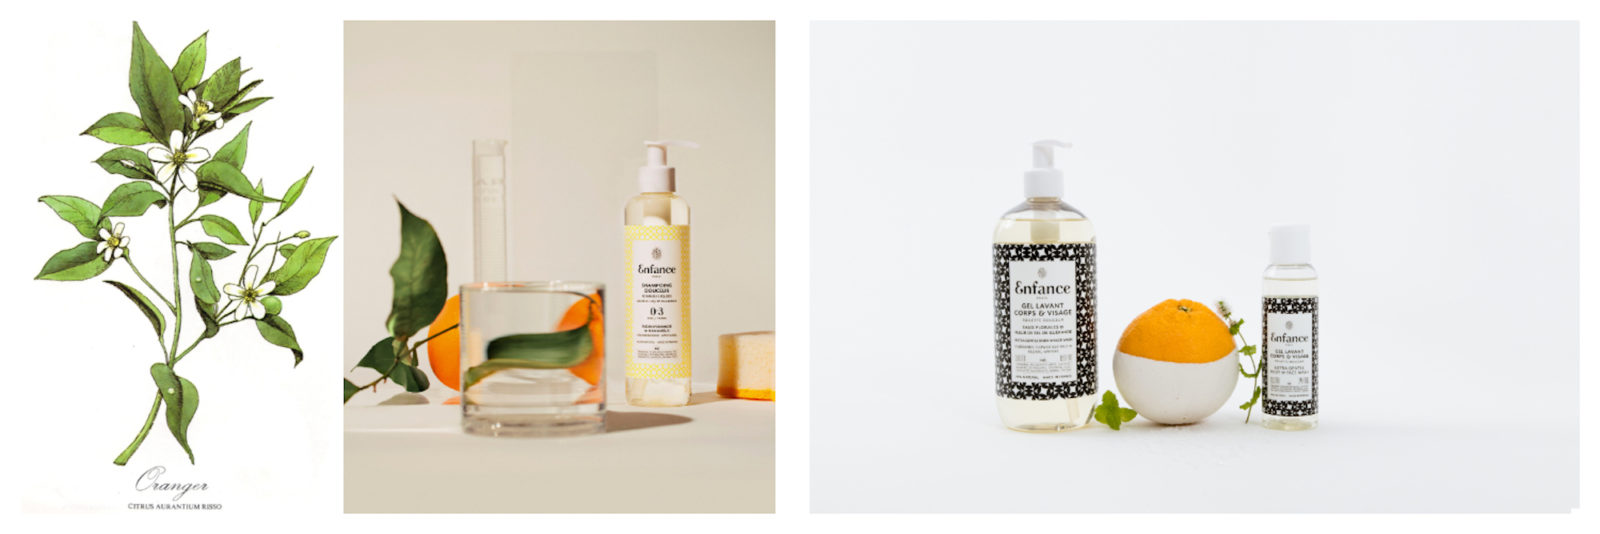 French beauty brand store in Paris, Oh My Cream! stocks organic Enfance products made with natural ingredients like zesty orange for the whole family.